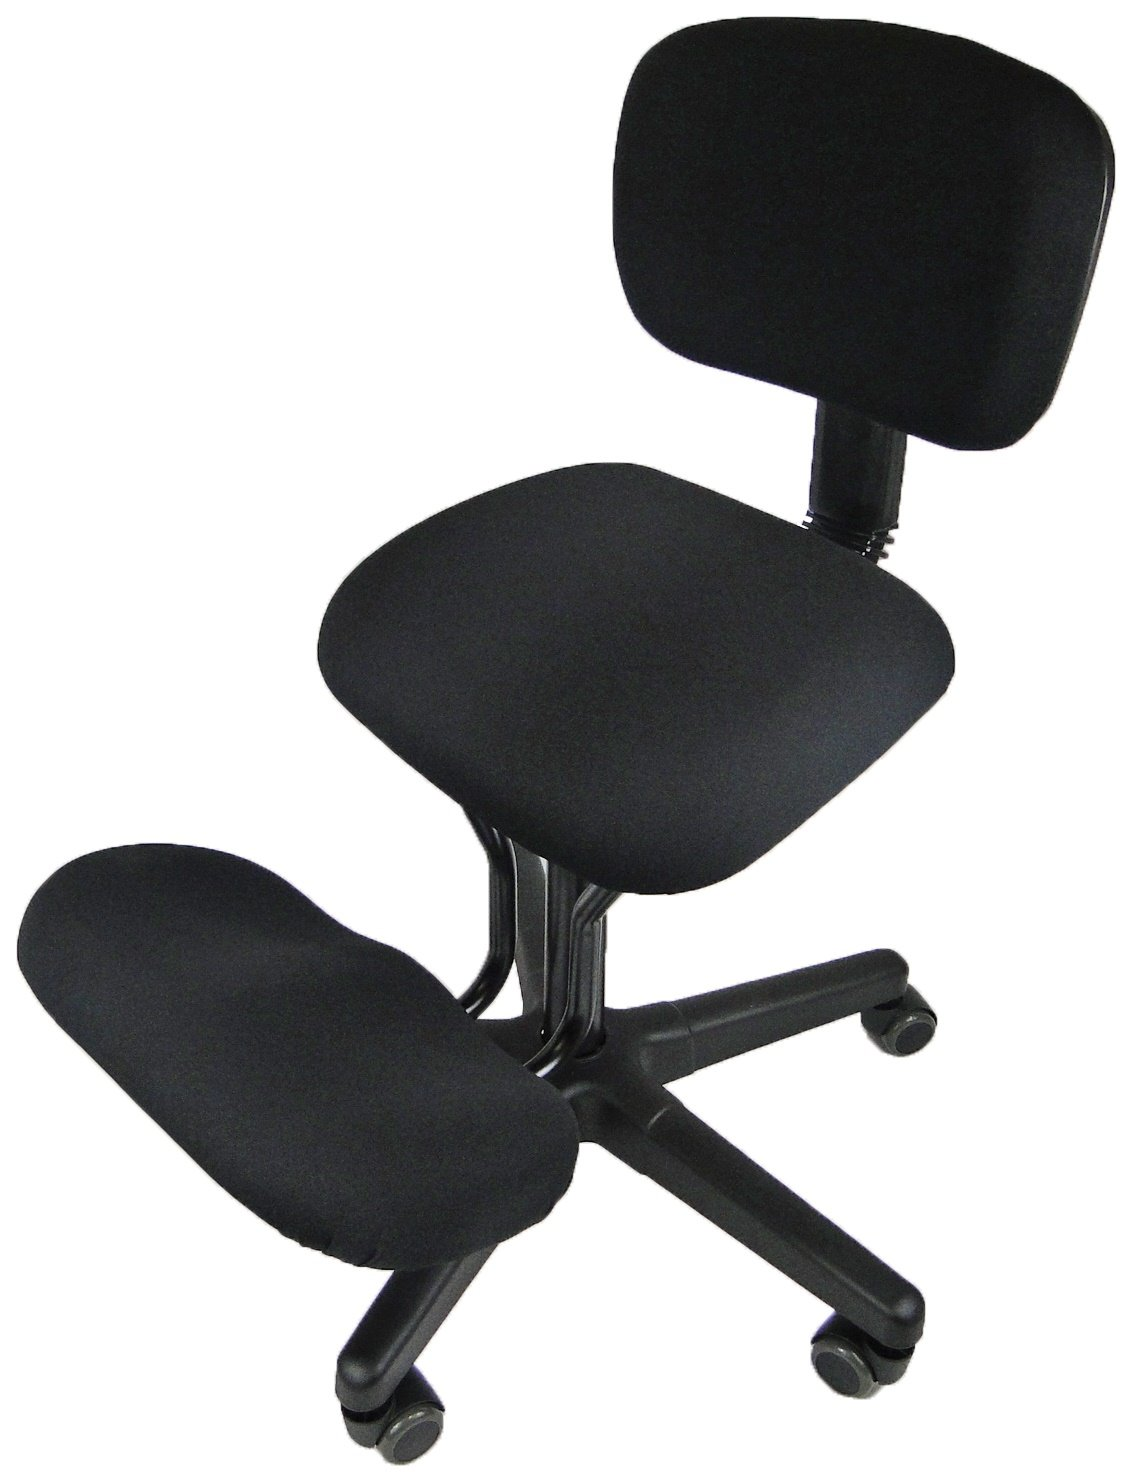 Solace Kneeling Chair With Back Support Ergonomic Chair